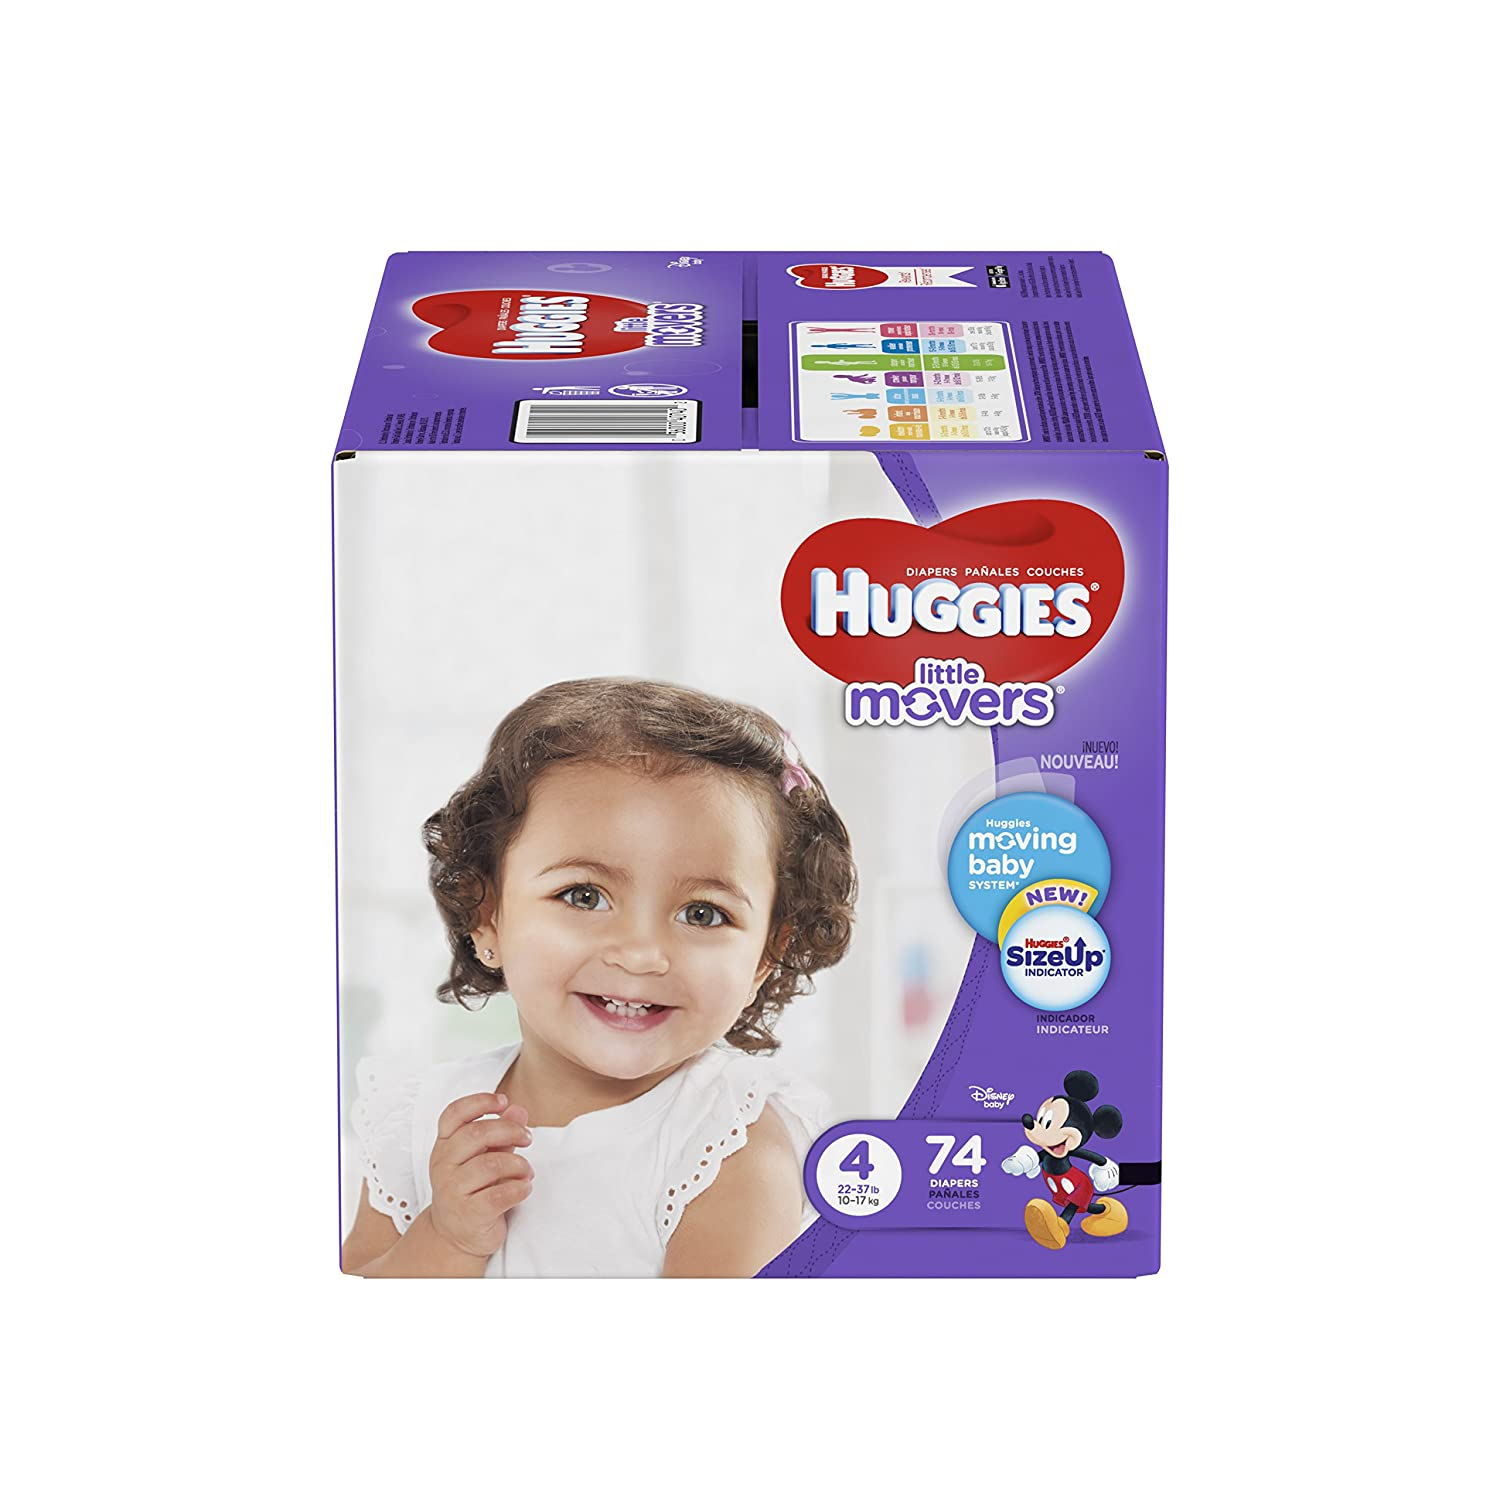 Amazon.com: HUGGIES LITTLE MOVERS Diapers, Size 4 (22-37 lb.), 74 Ct., GIGA JR PACK (Packaging May Vary), Baby Diapers for Active Babies: Health & Personal ...